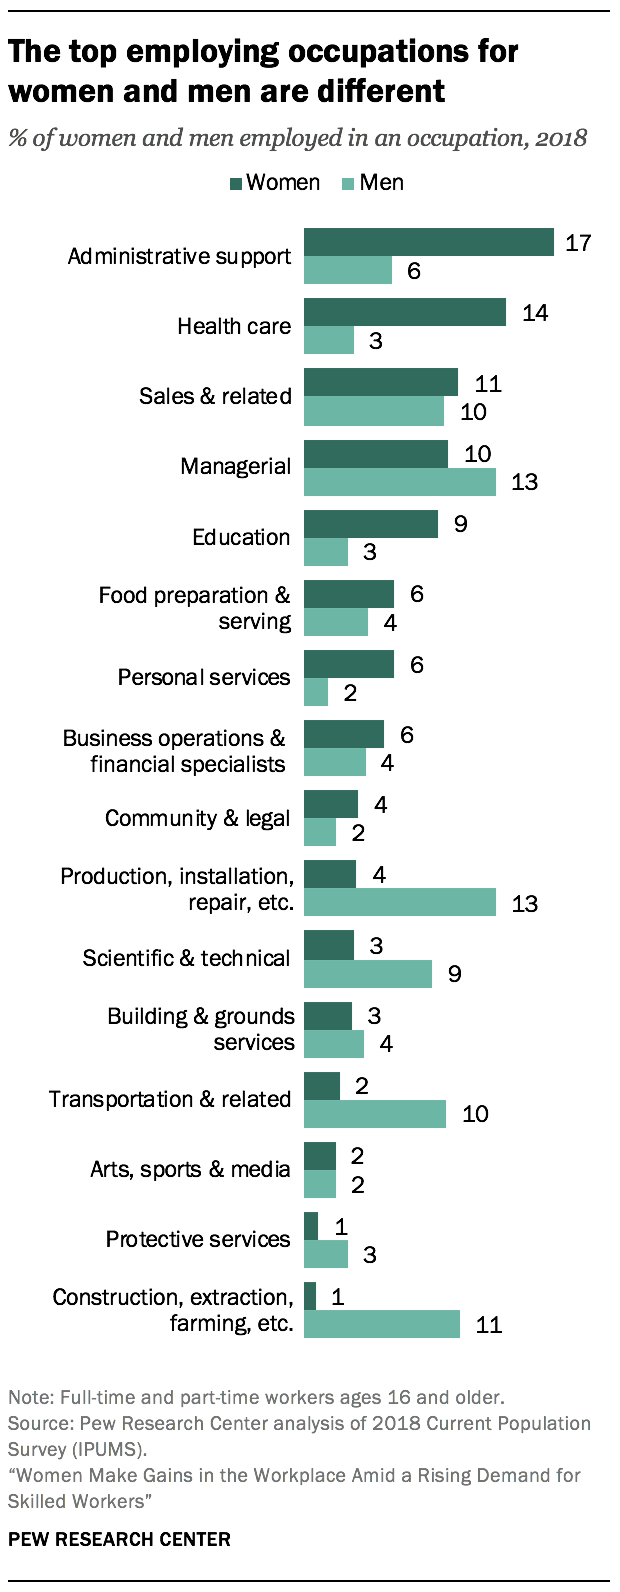 The top employing occupations for women and men are different